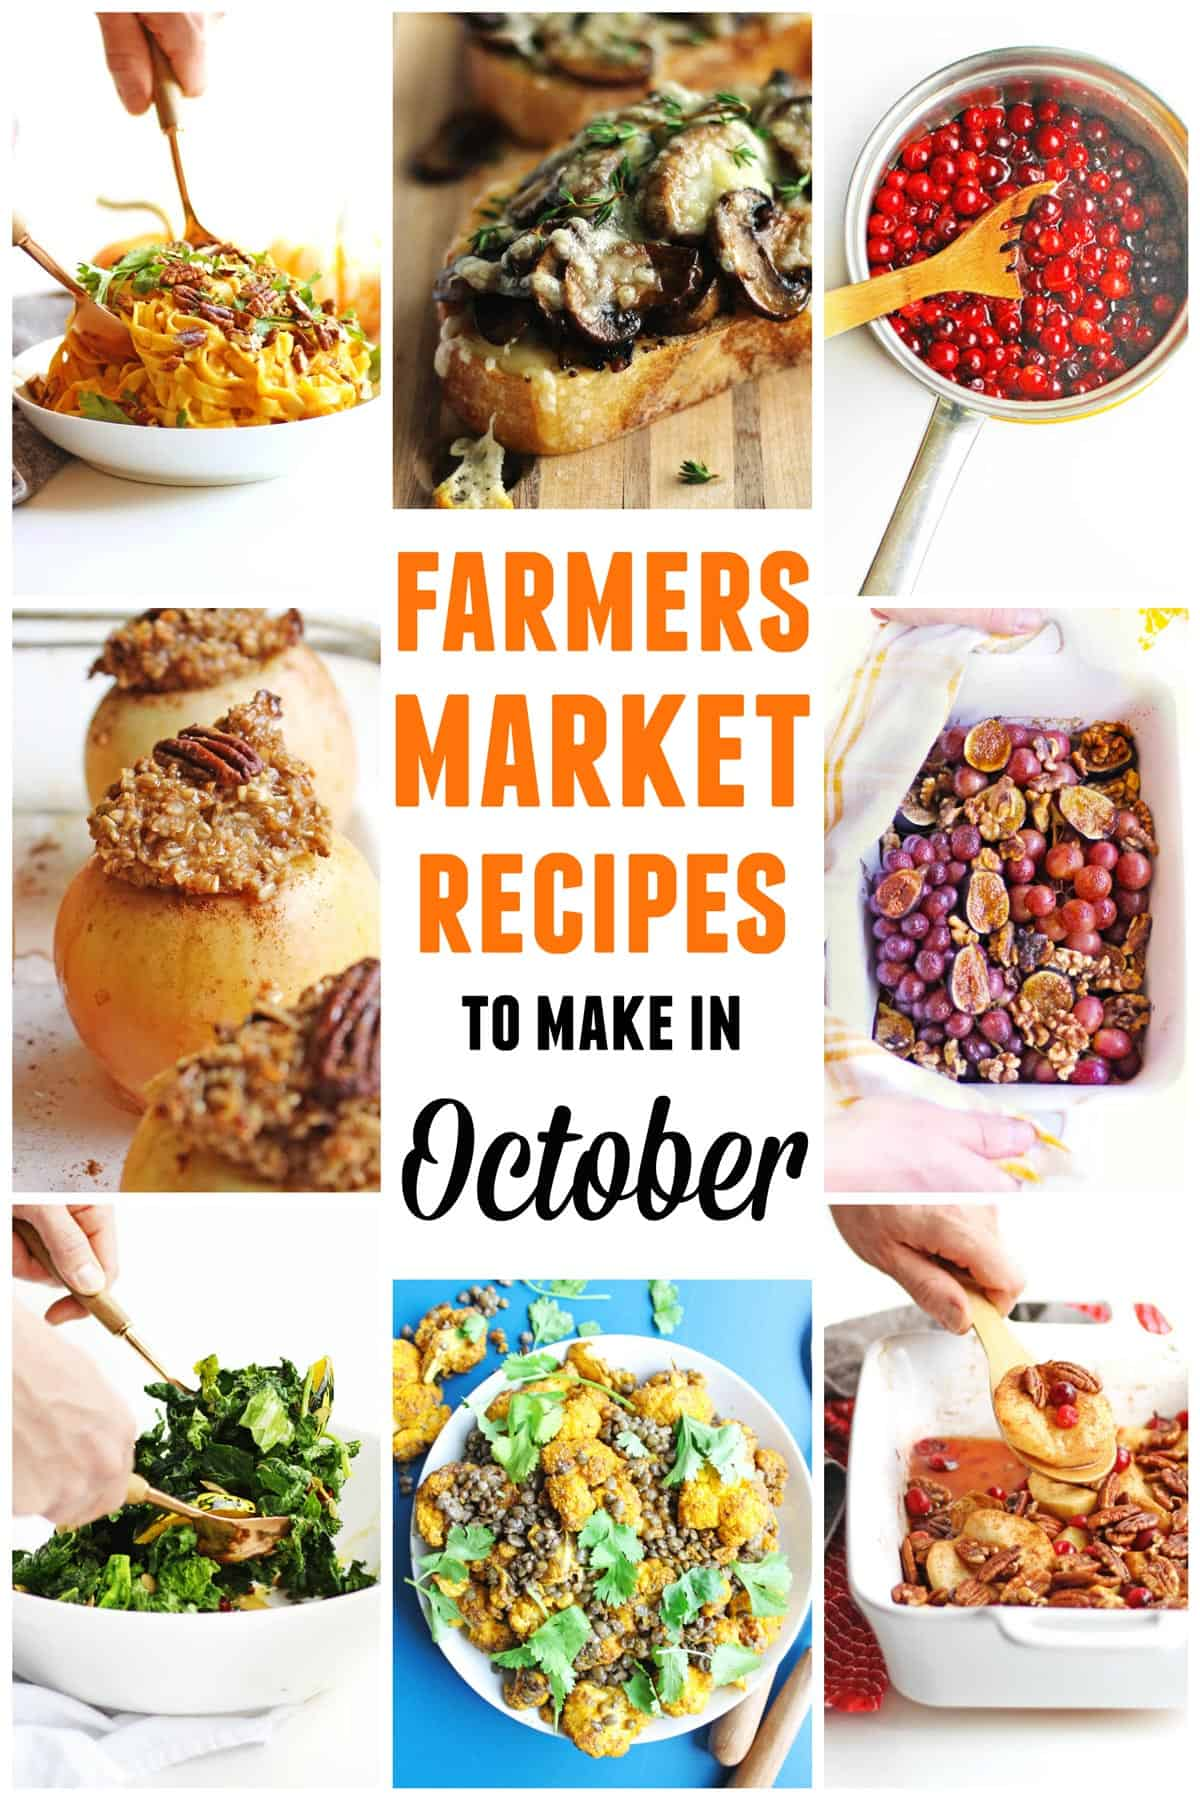 Farmers market October recipes